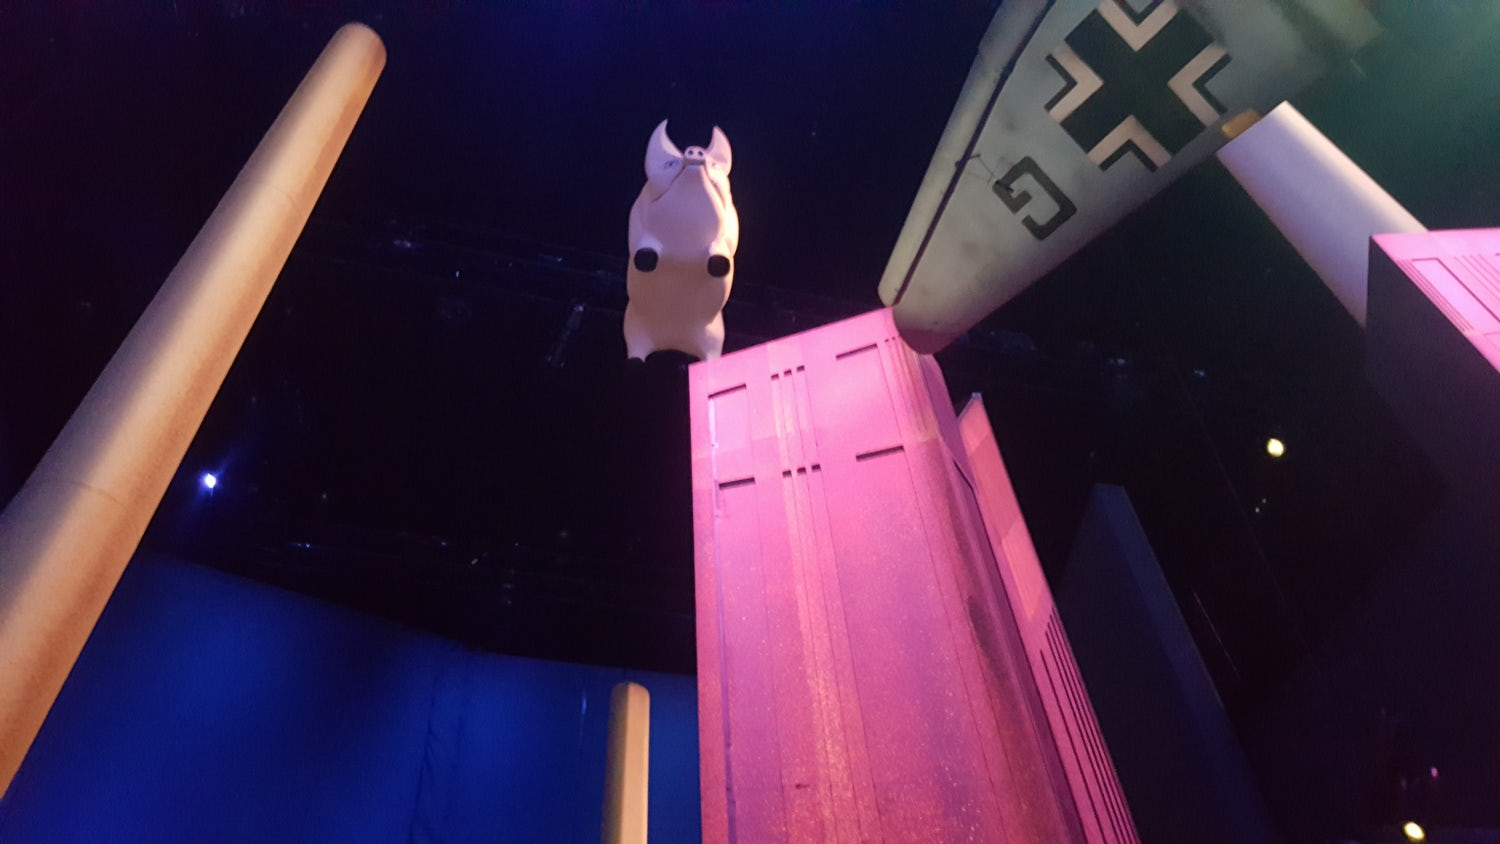 A pink pig is suspended from the ceiling above Stufish's Battersea Power Station installation